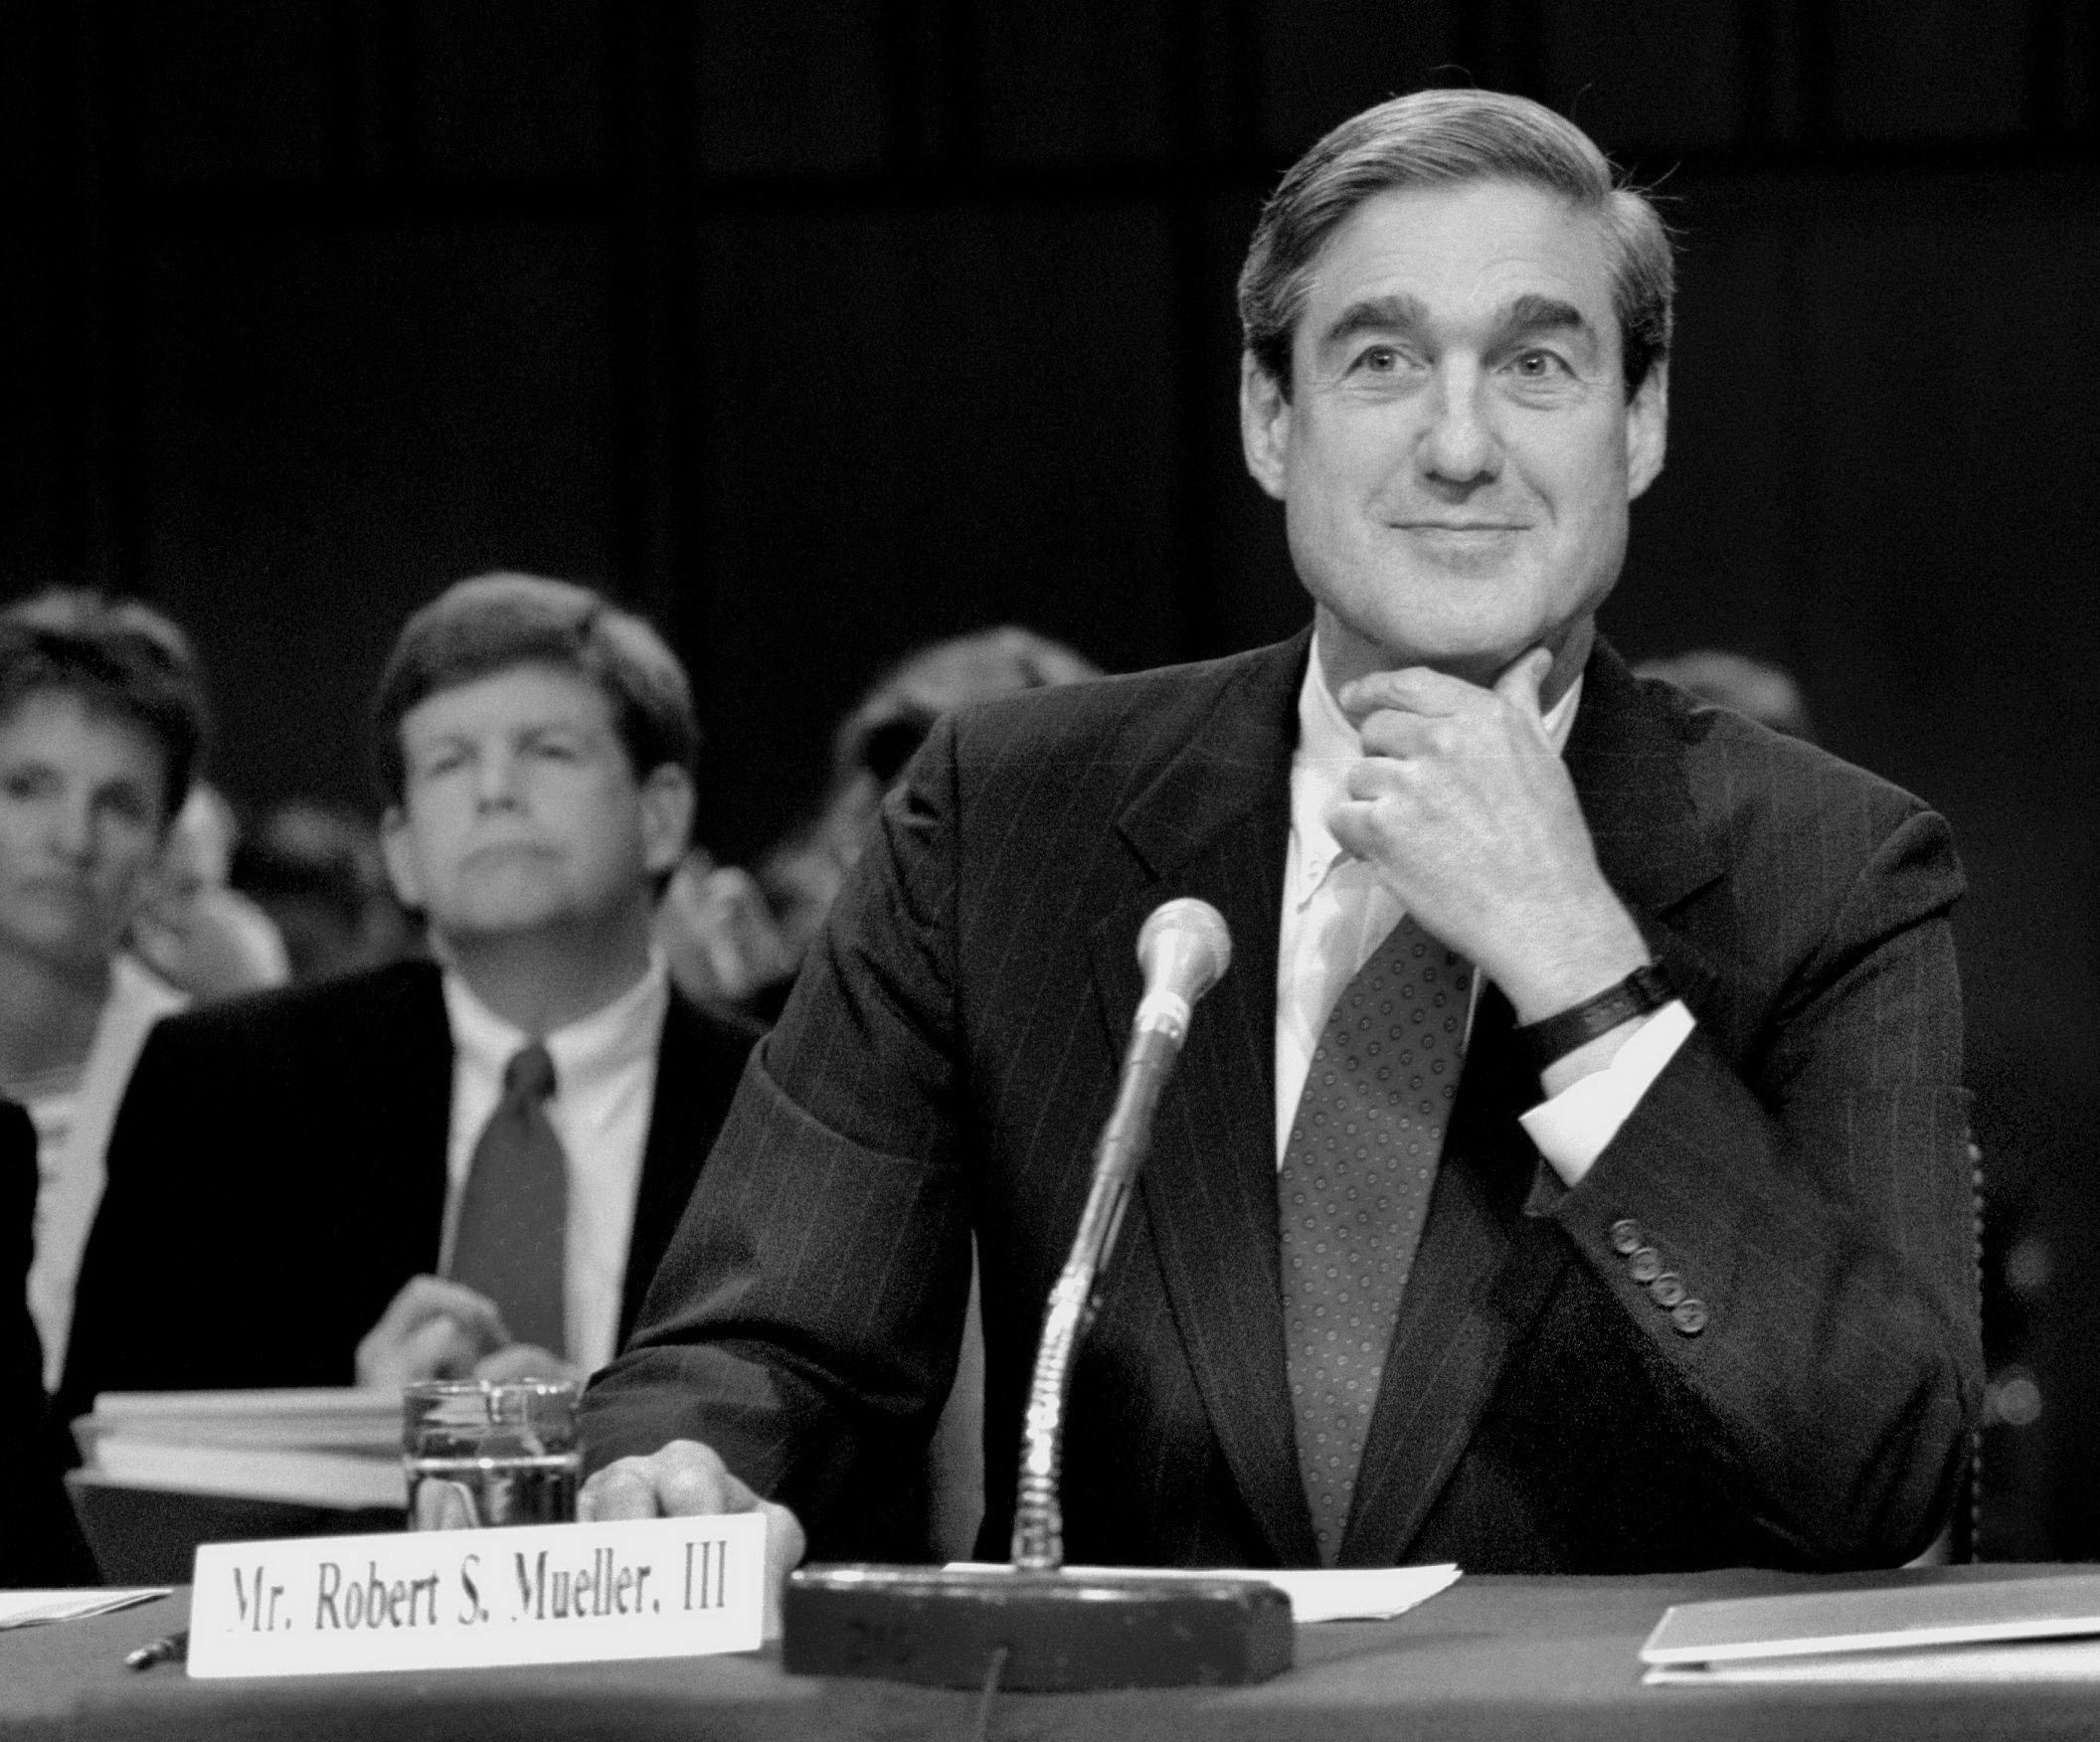 The Senate Judiciary Committee holds a hearing on Robert Mueller's nomination to be director of the FBI in 2001. MUST CREDIT: Washington Post photo by Ray Lustig